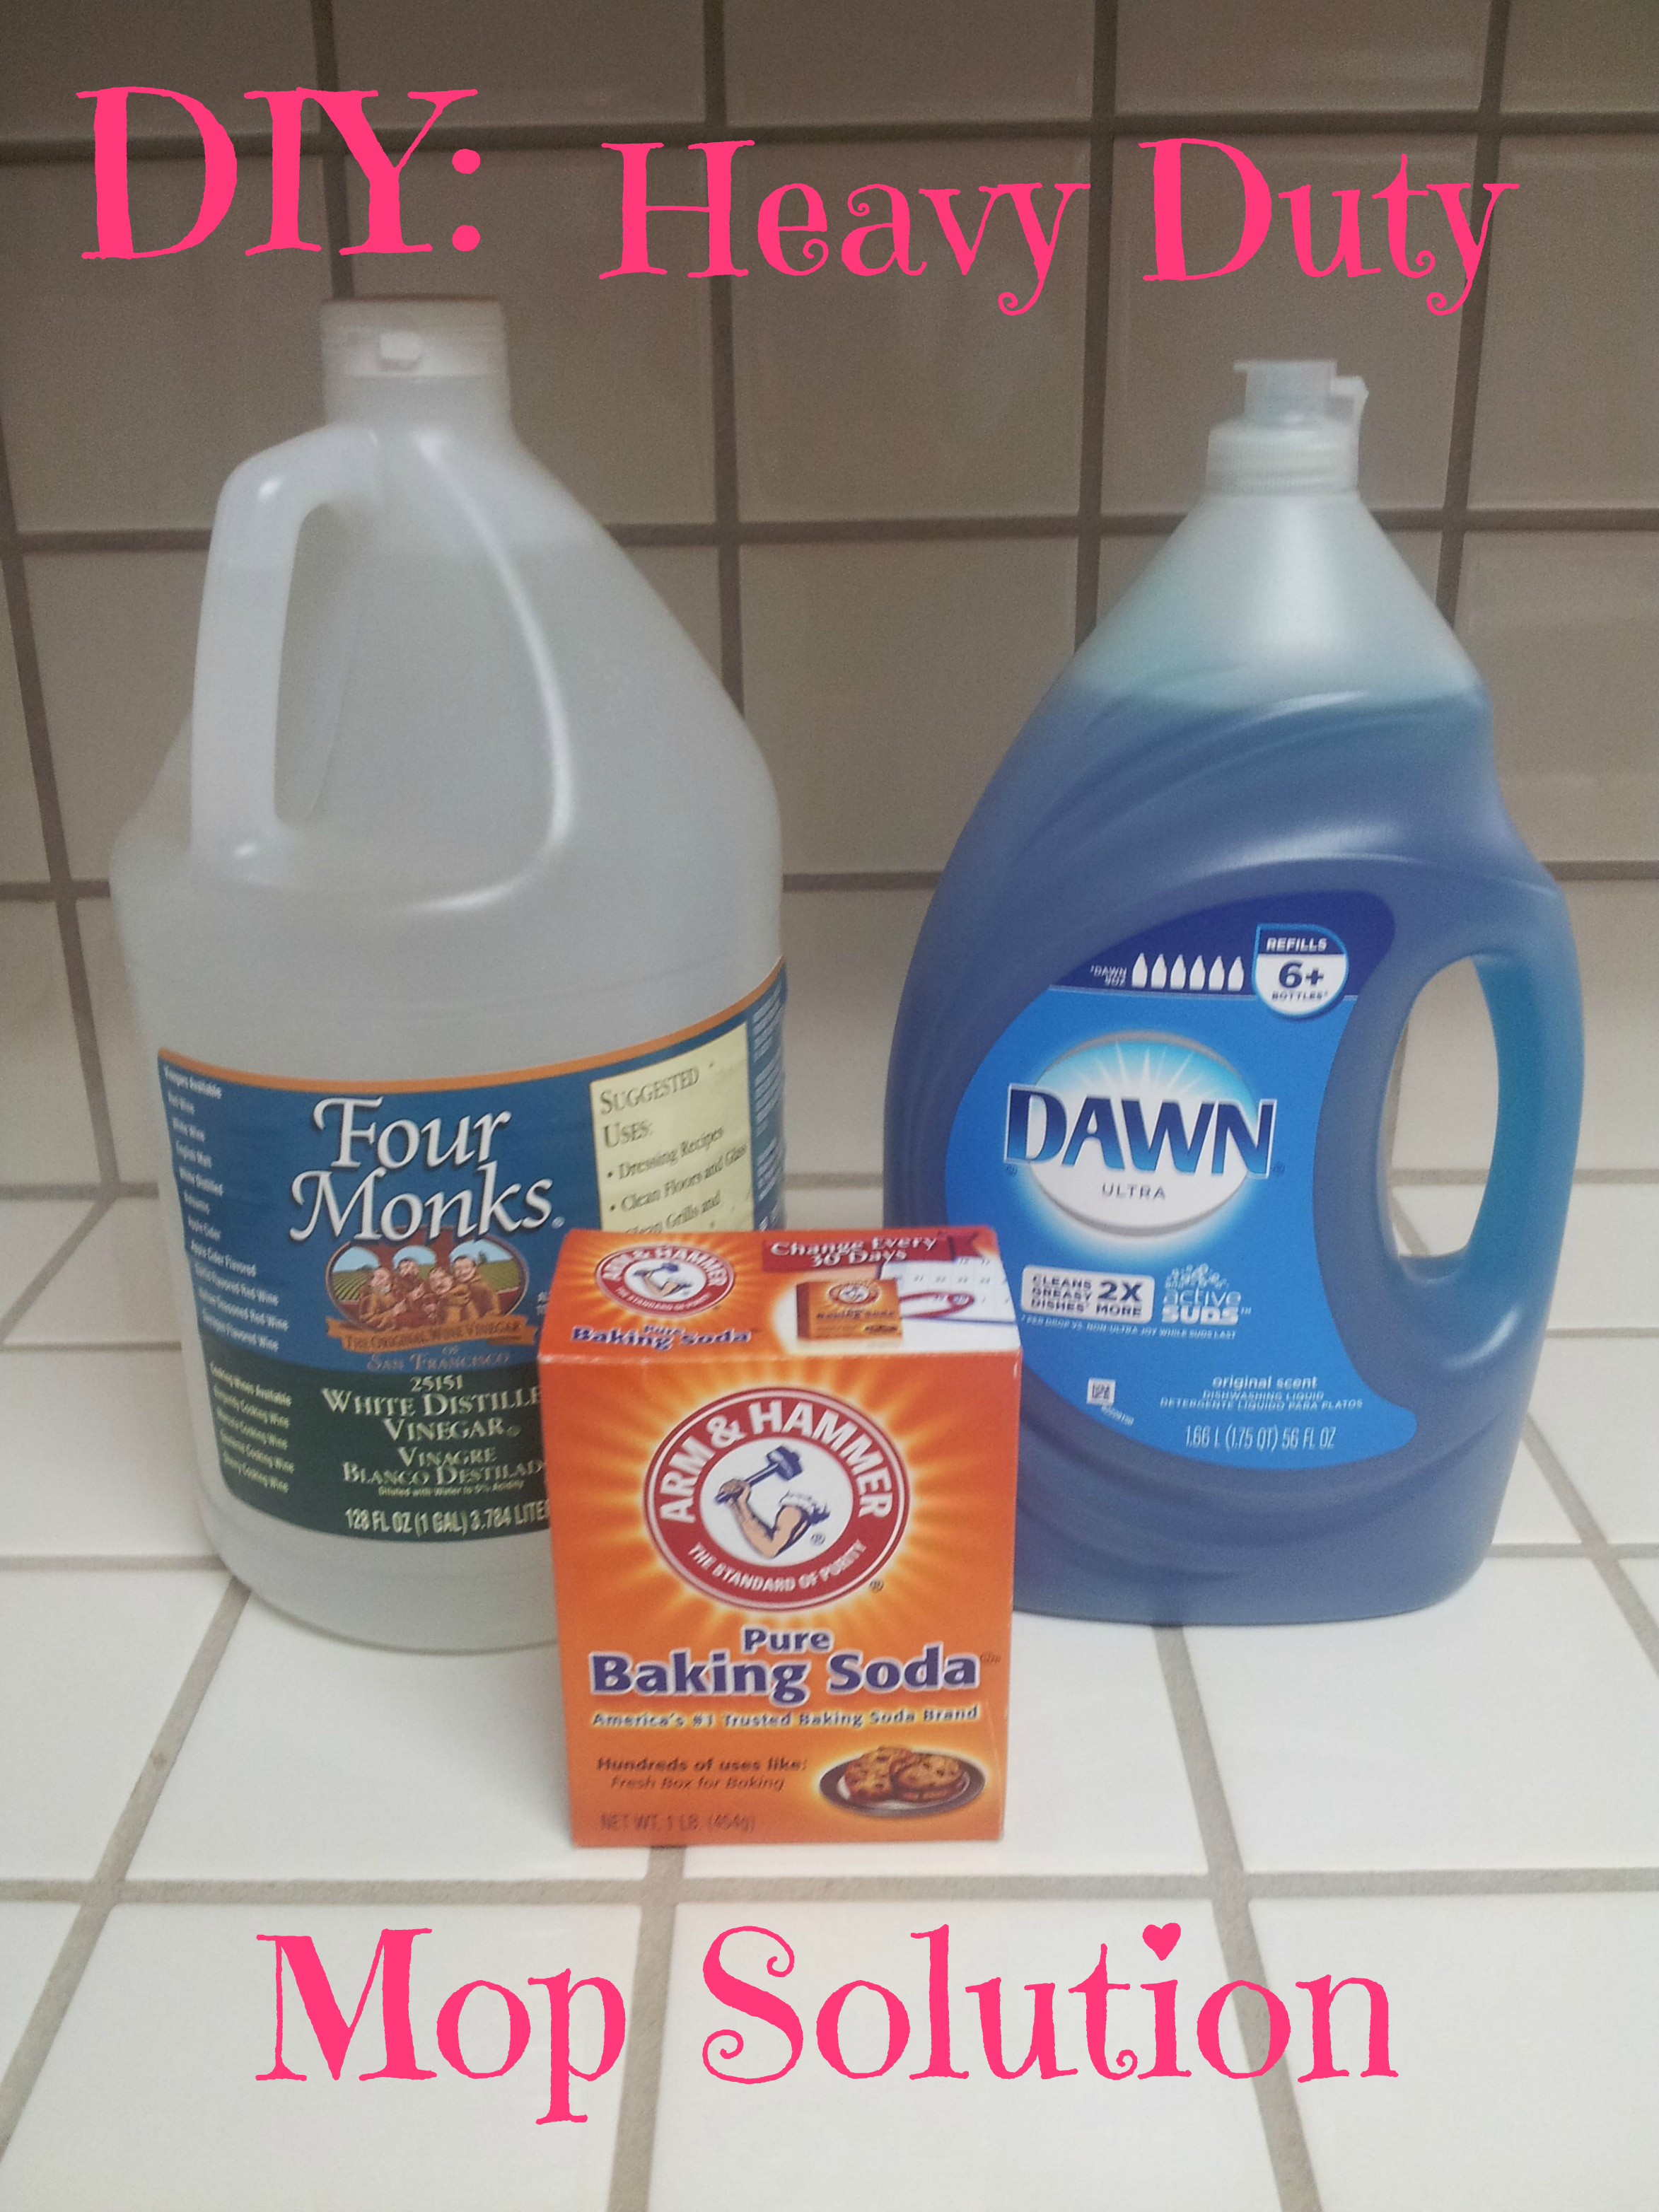 Diy Heavy Duty Mop Solution Sweet Deals 4 Moms